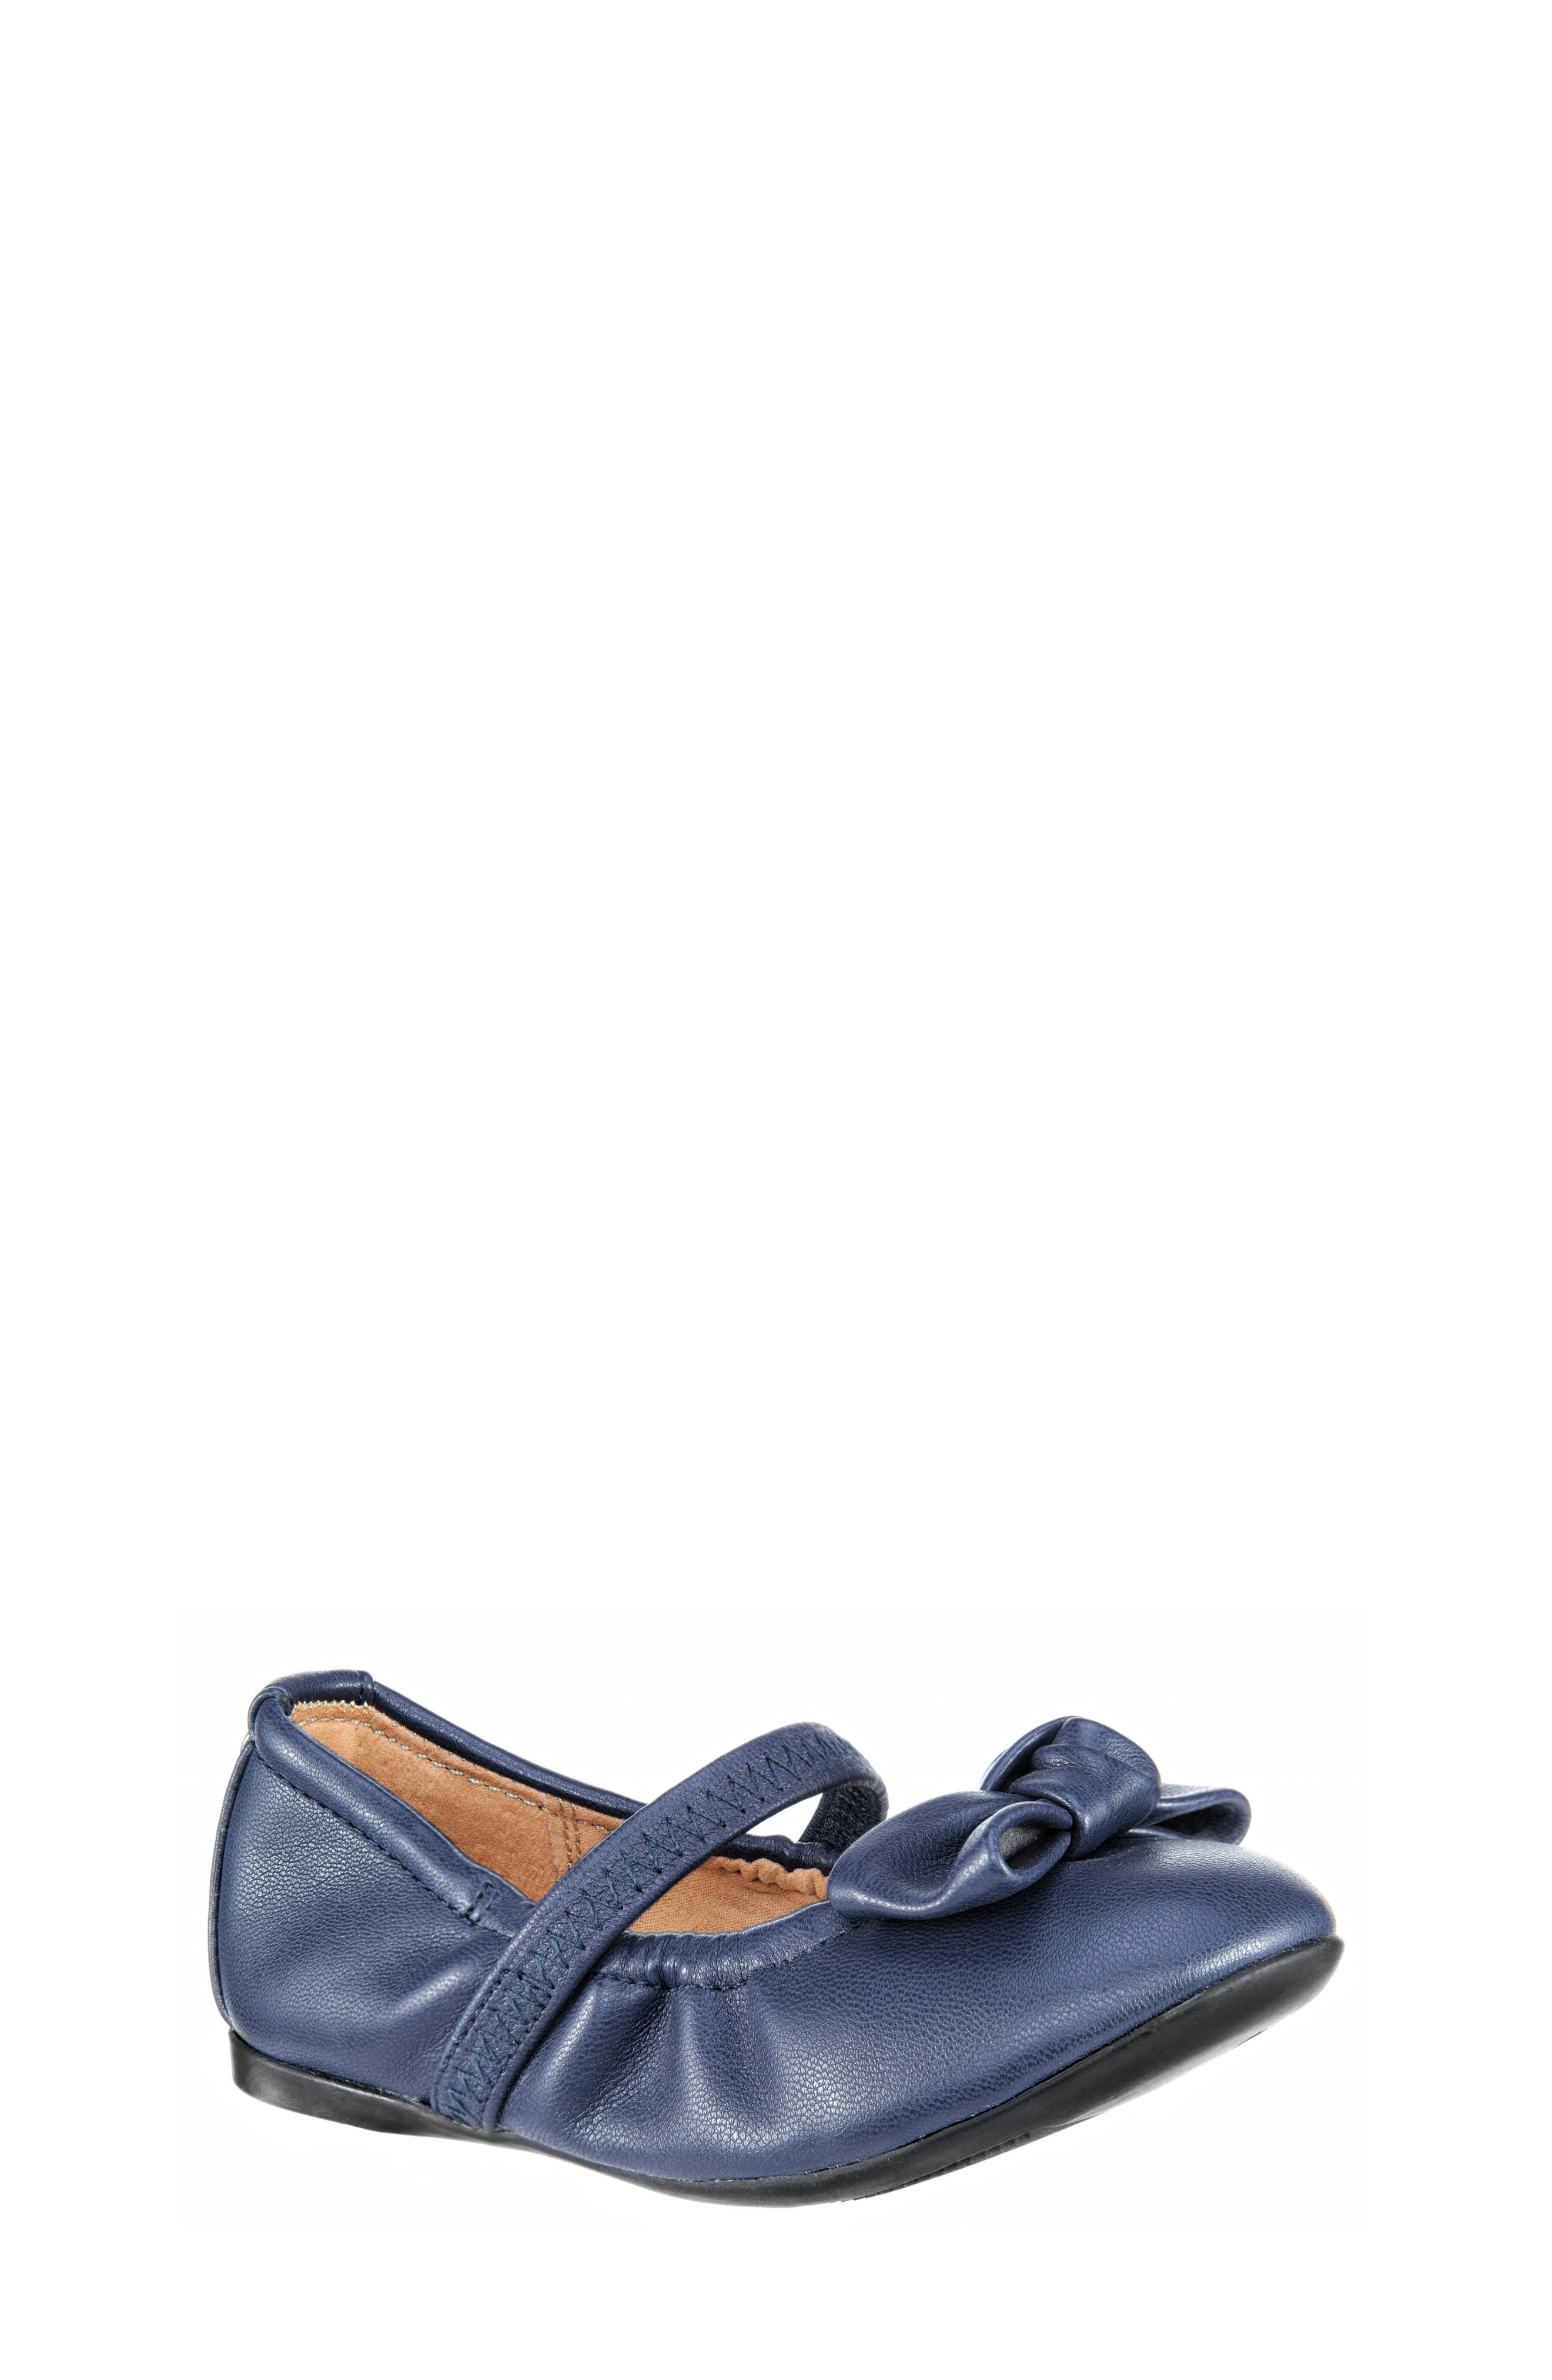 Karla Bow Ballet Flat,                         Main,                         color, Navy Smooth Blue